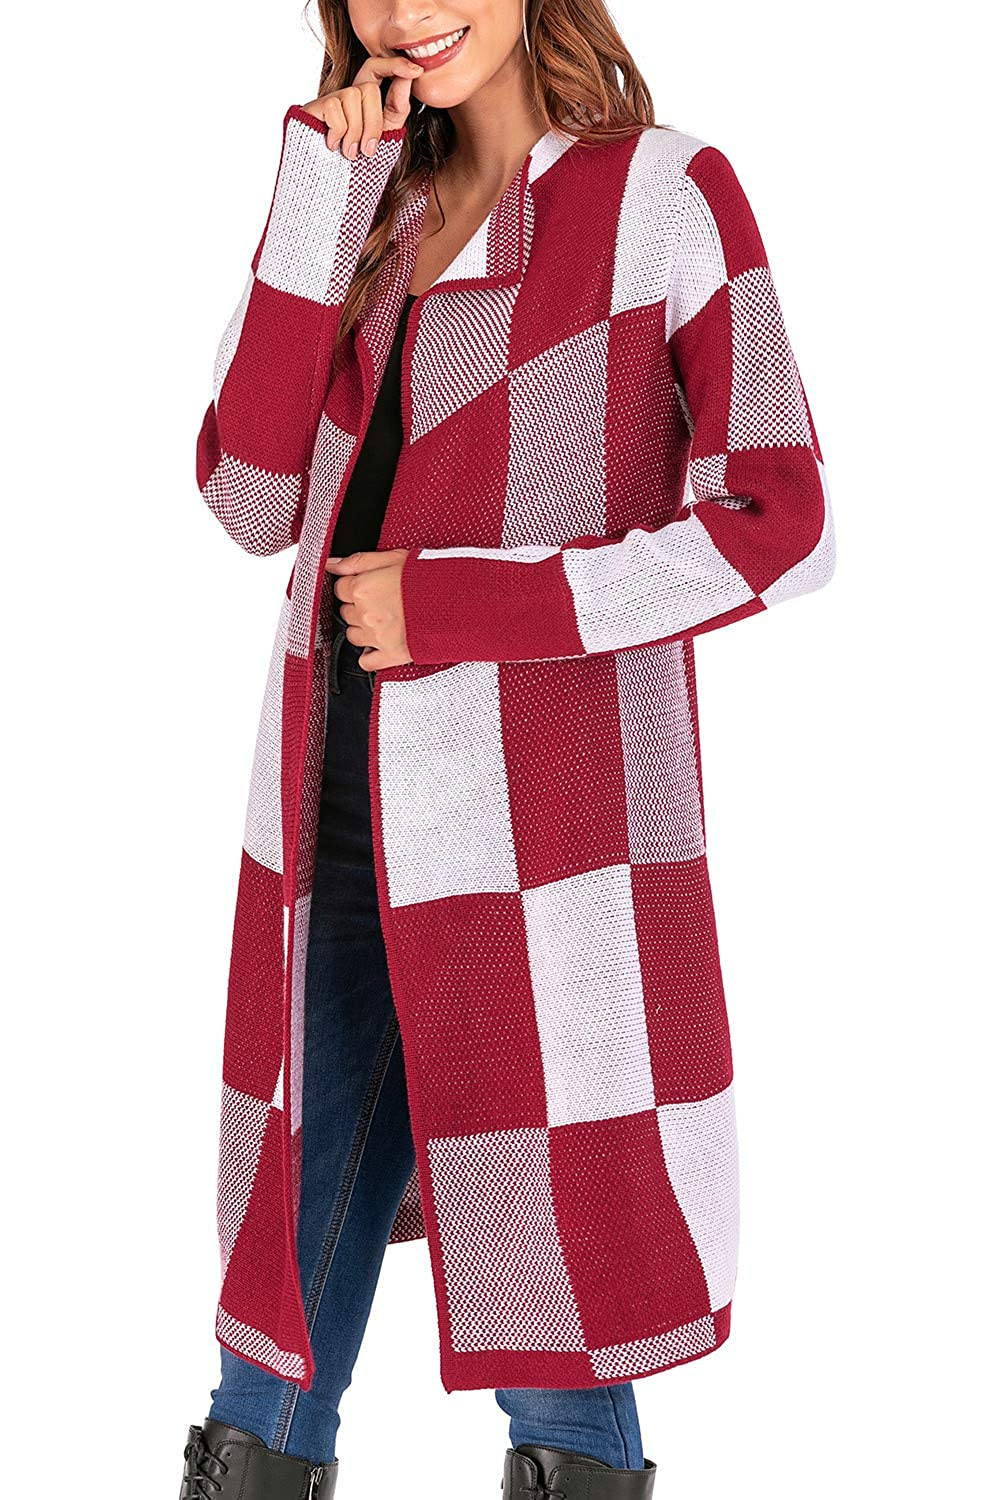 Yoyoma Womens Sweater Jacket Quality Cashmere Plaid Cardigan Coat Sweater with Fold-Over Collar for Winter